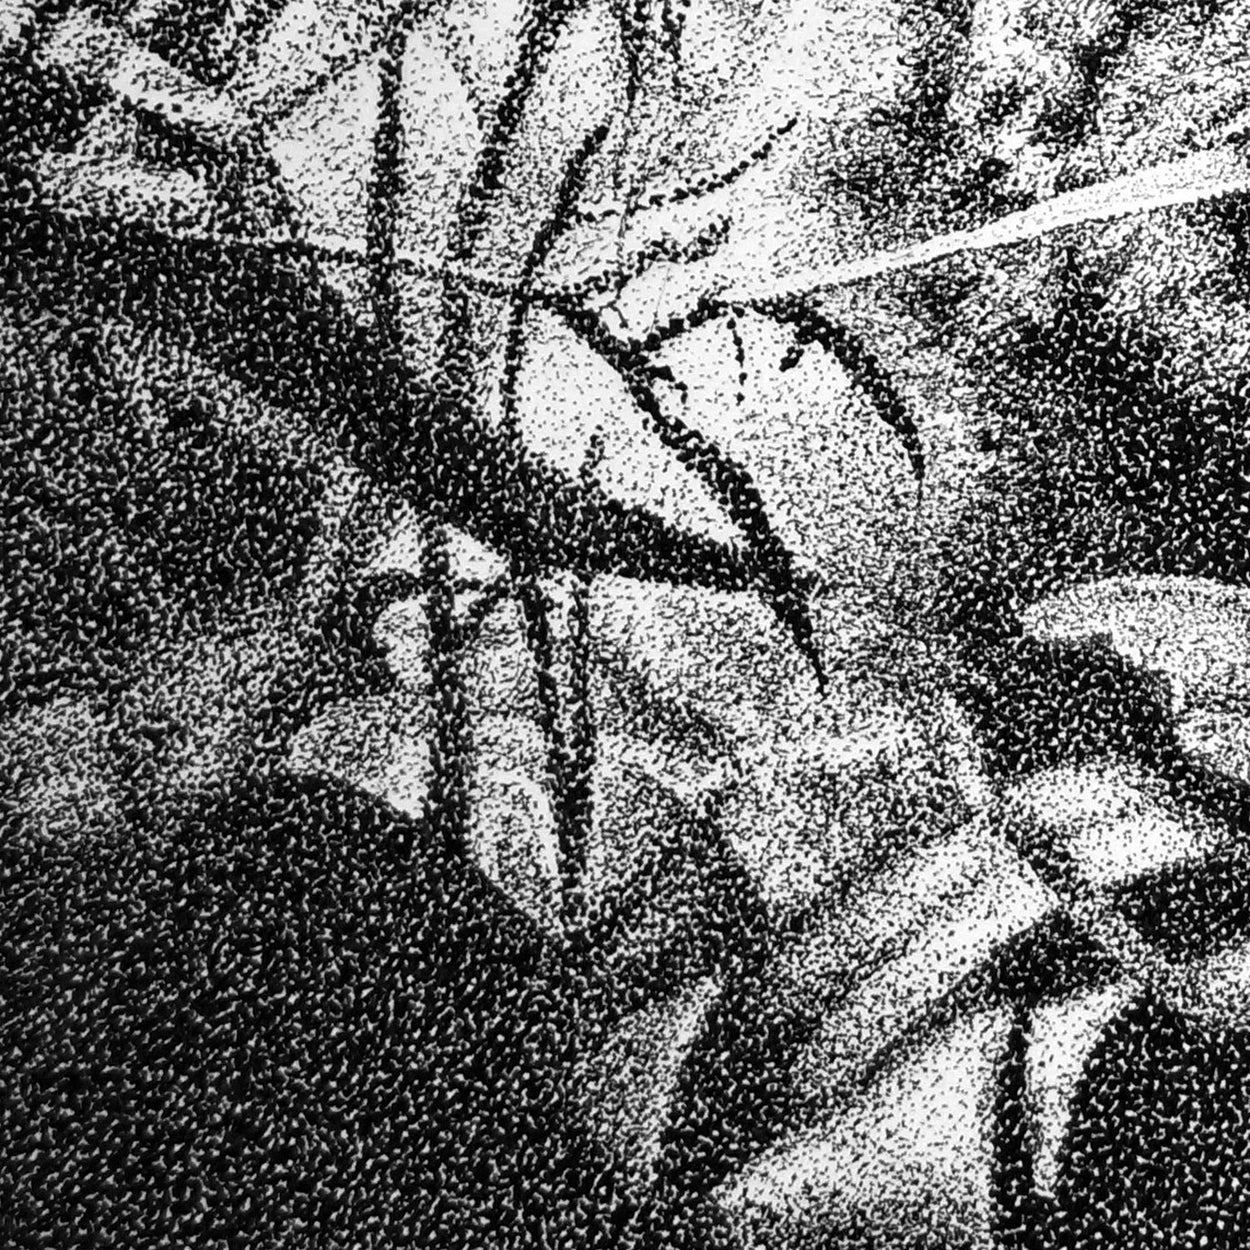 Pen Stippling Close-up - The Thriving Wild